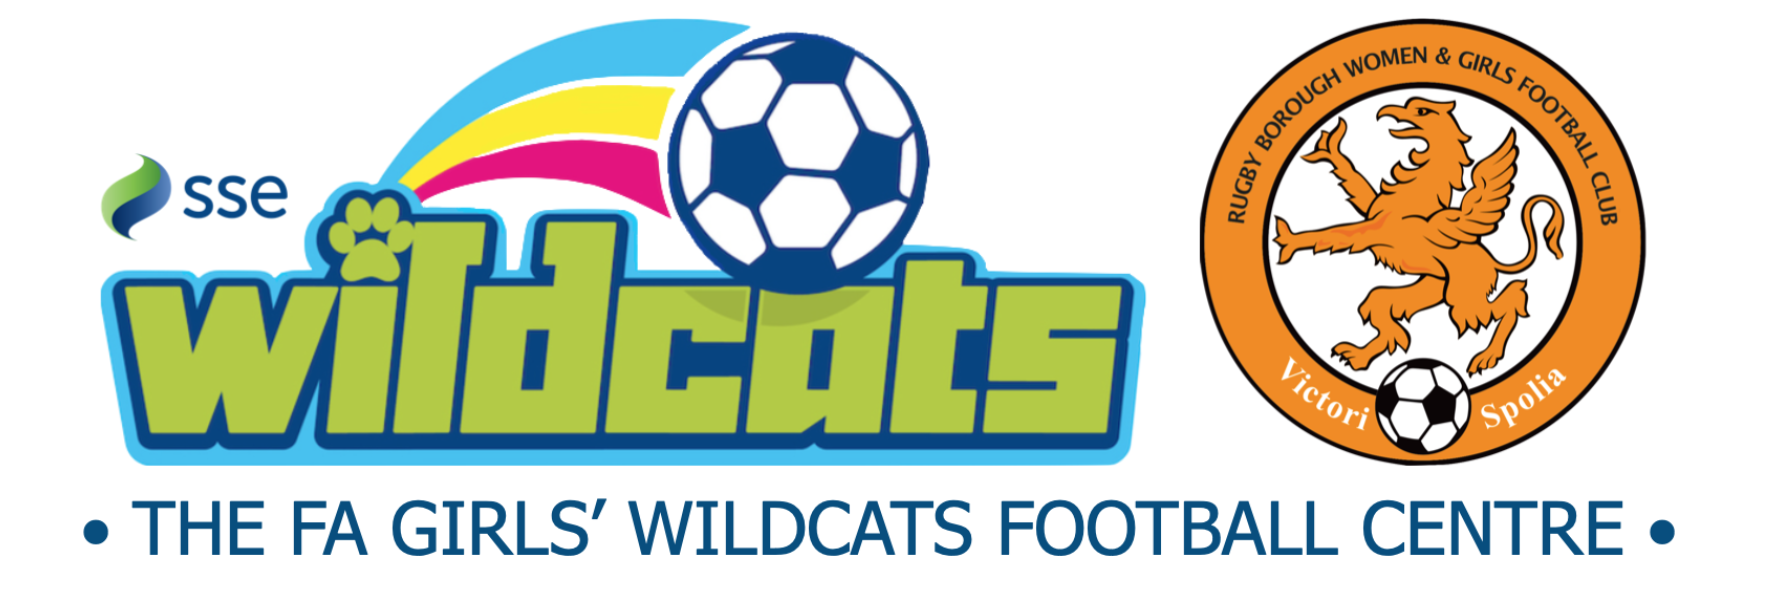 Wildcats & Rugby Borough Women & Girls Crest